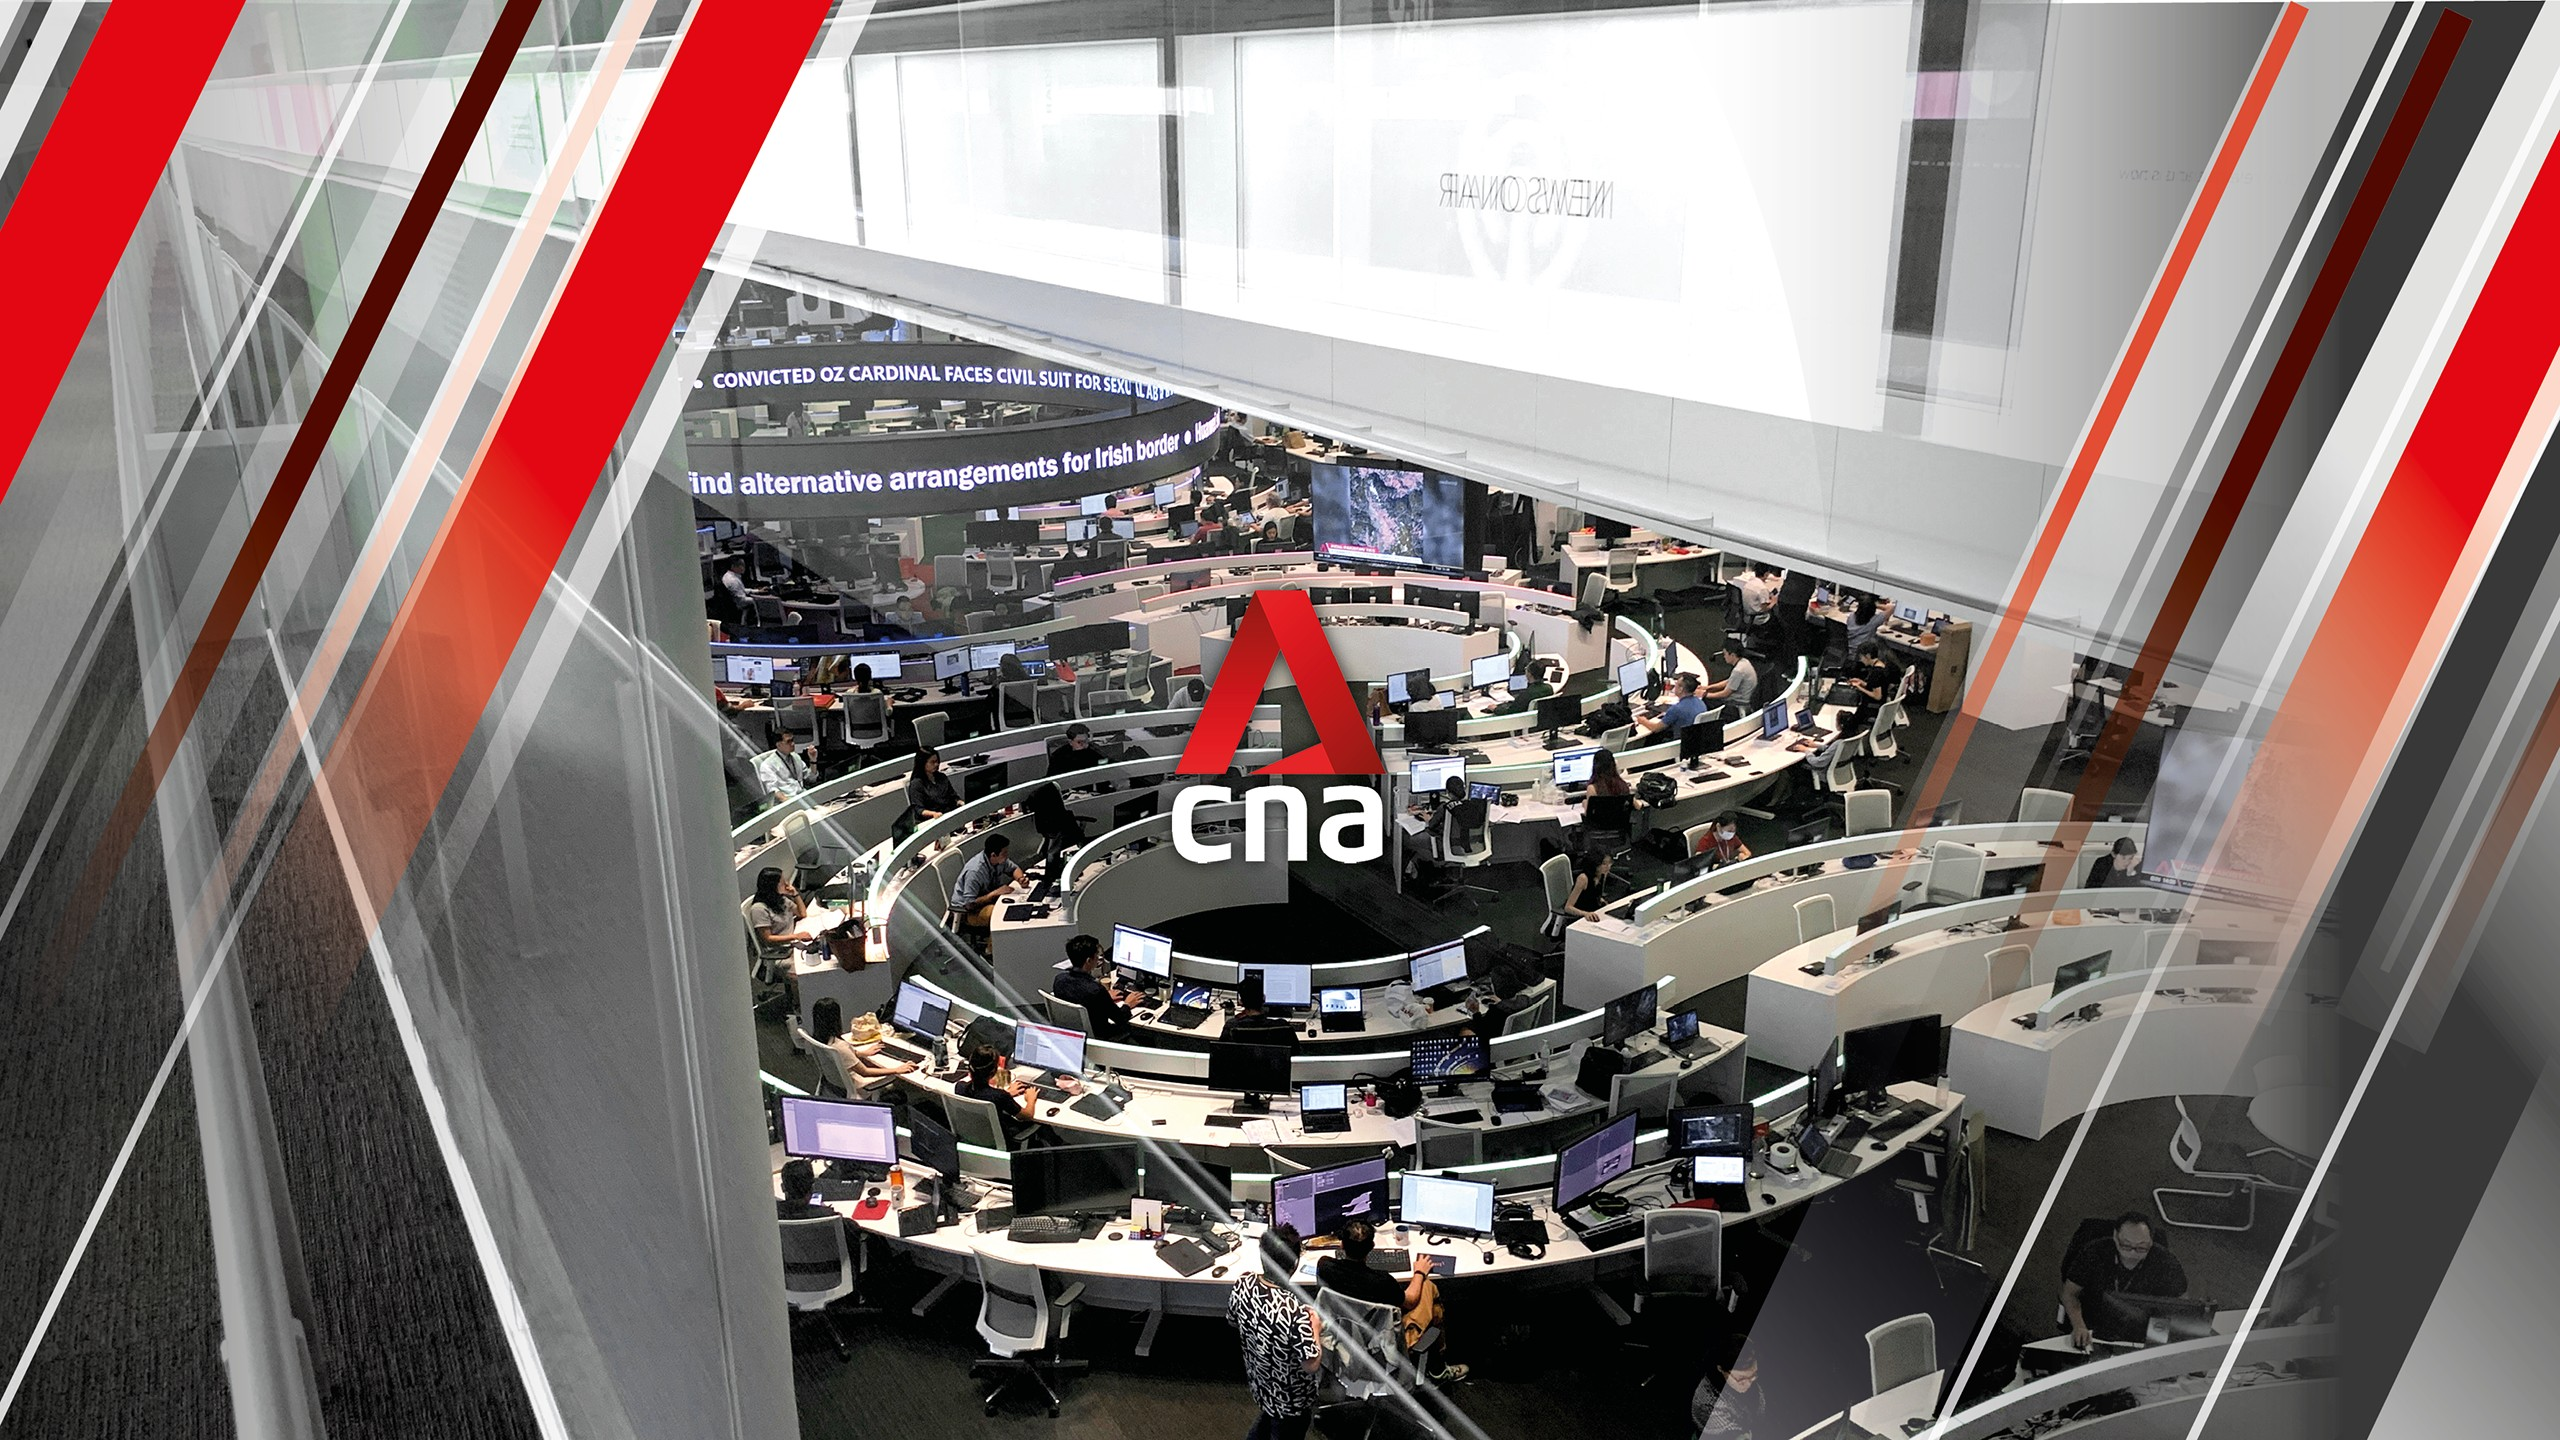 CNA has been named Channel of the Year by the London-based Association for International Broadcasting (AIB).  Photo courtesy: CNA